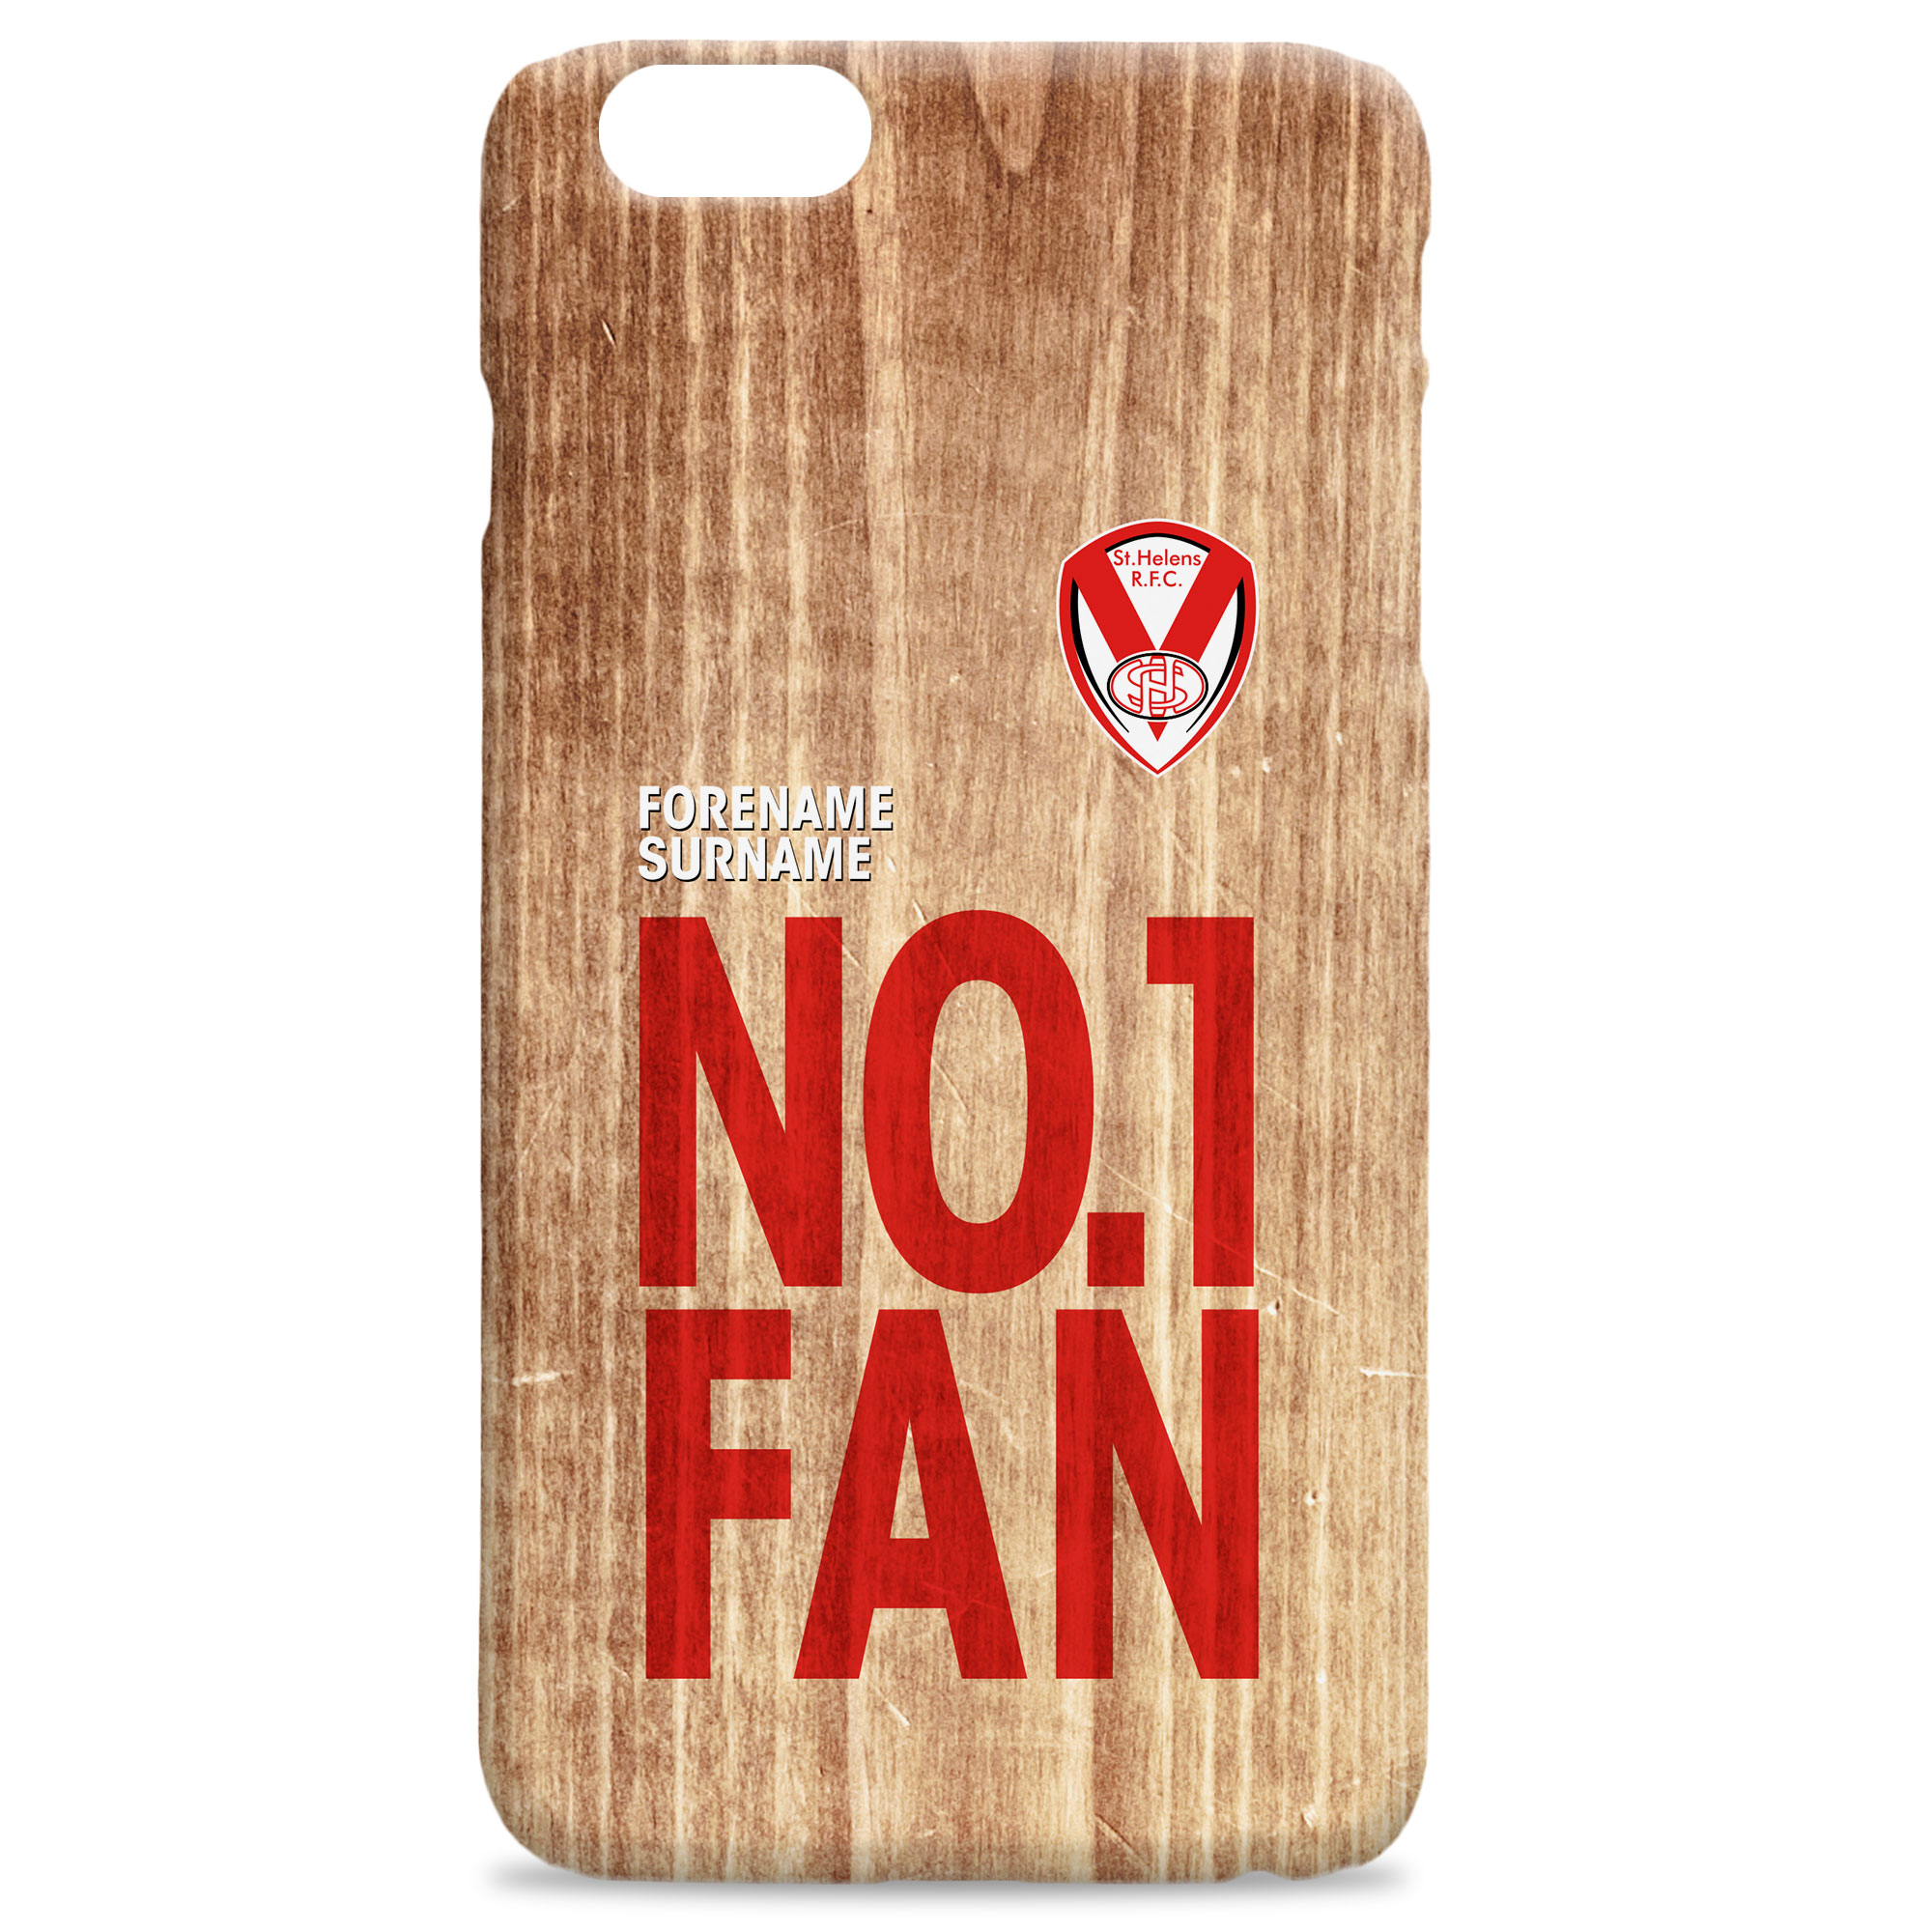 St Helens No 1 Fan Hard Back Phone Case